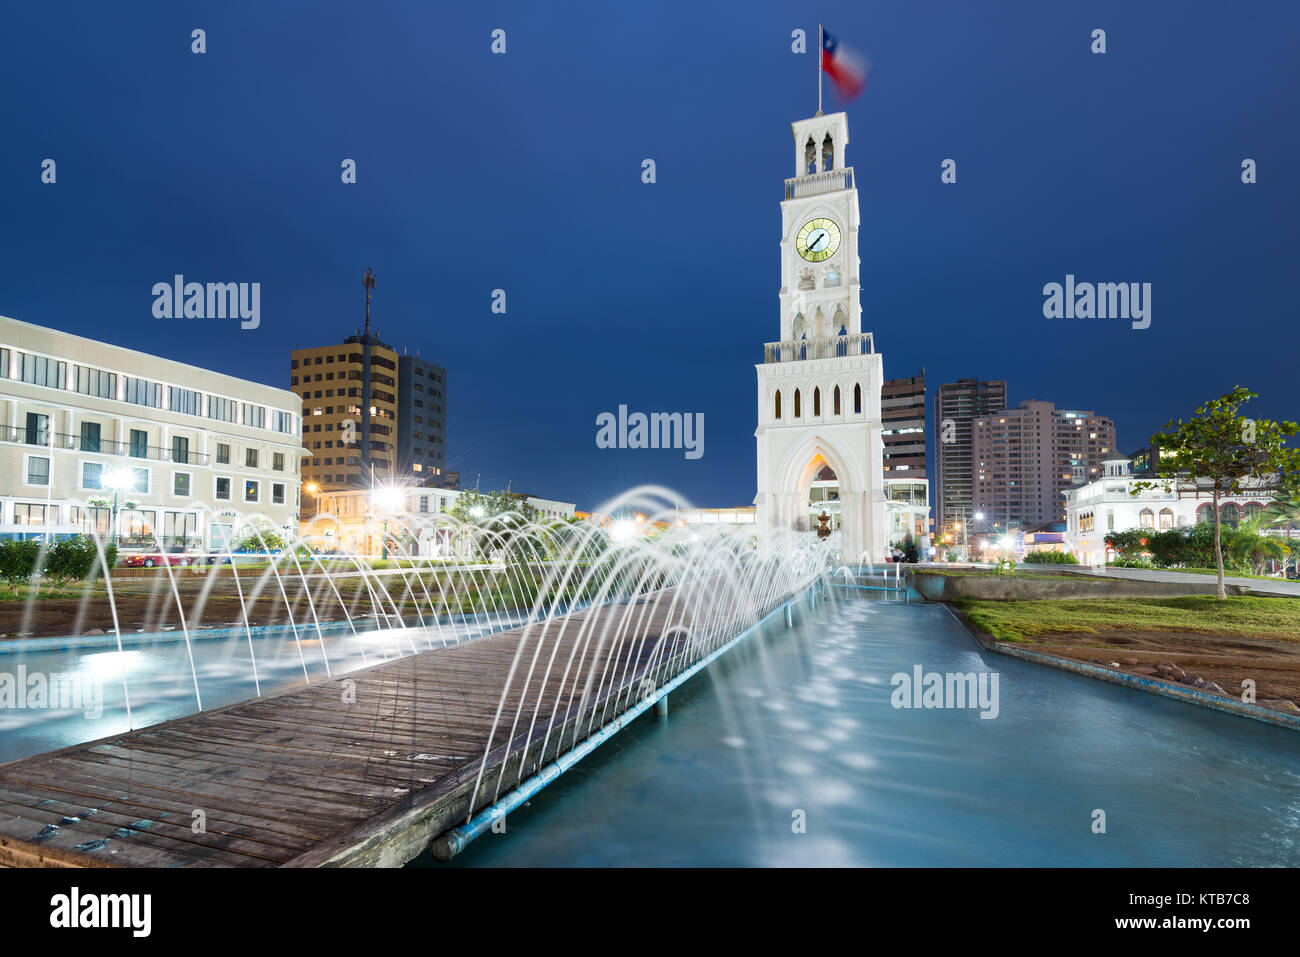 Iquique, Tarapaca Region, Chile - The clock tower of Iquique, a traditional building built in 1878 at downtown in - Stock Image